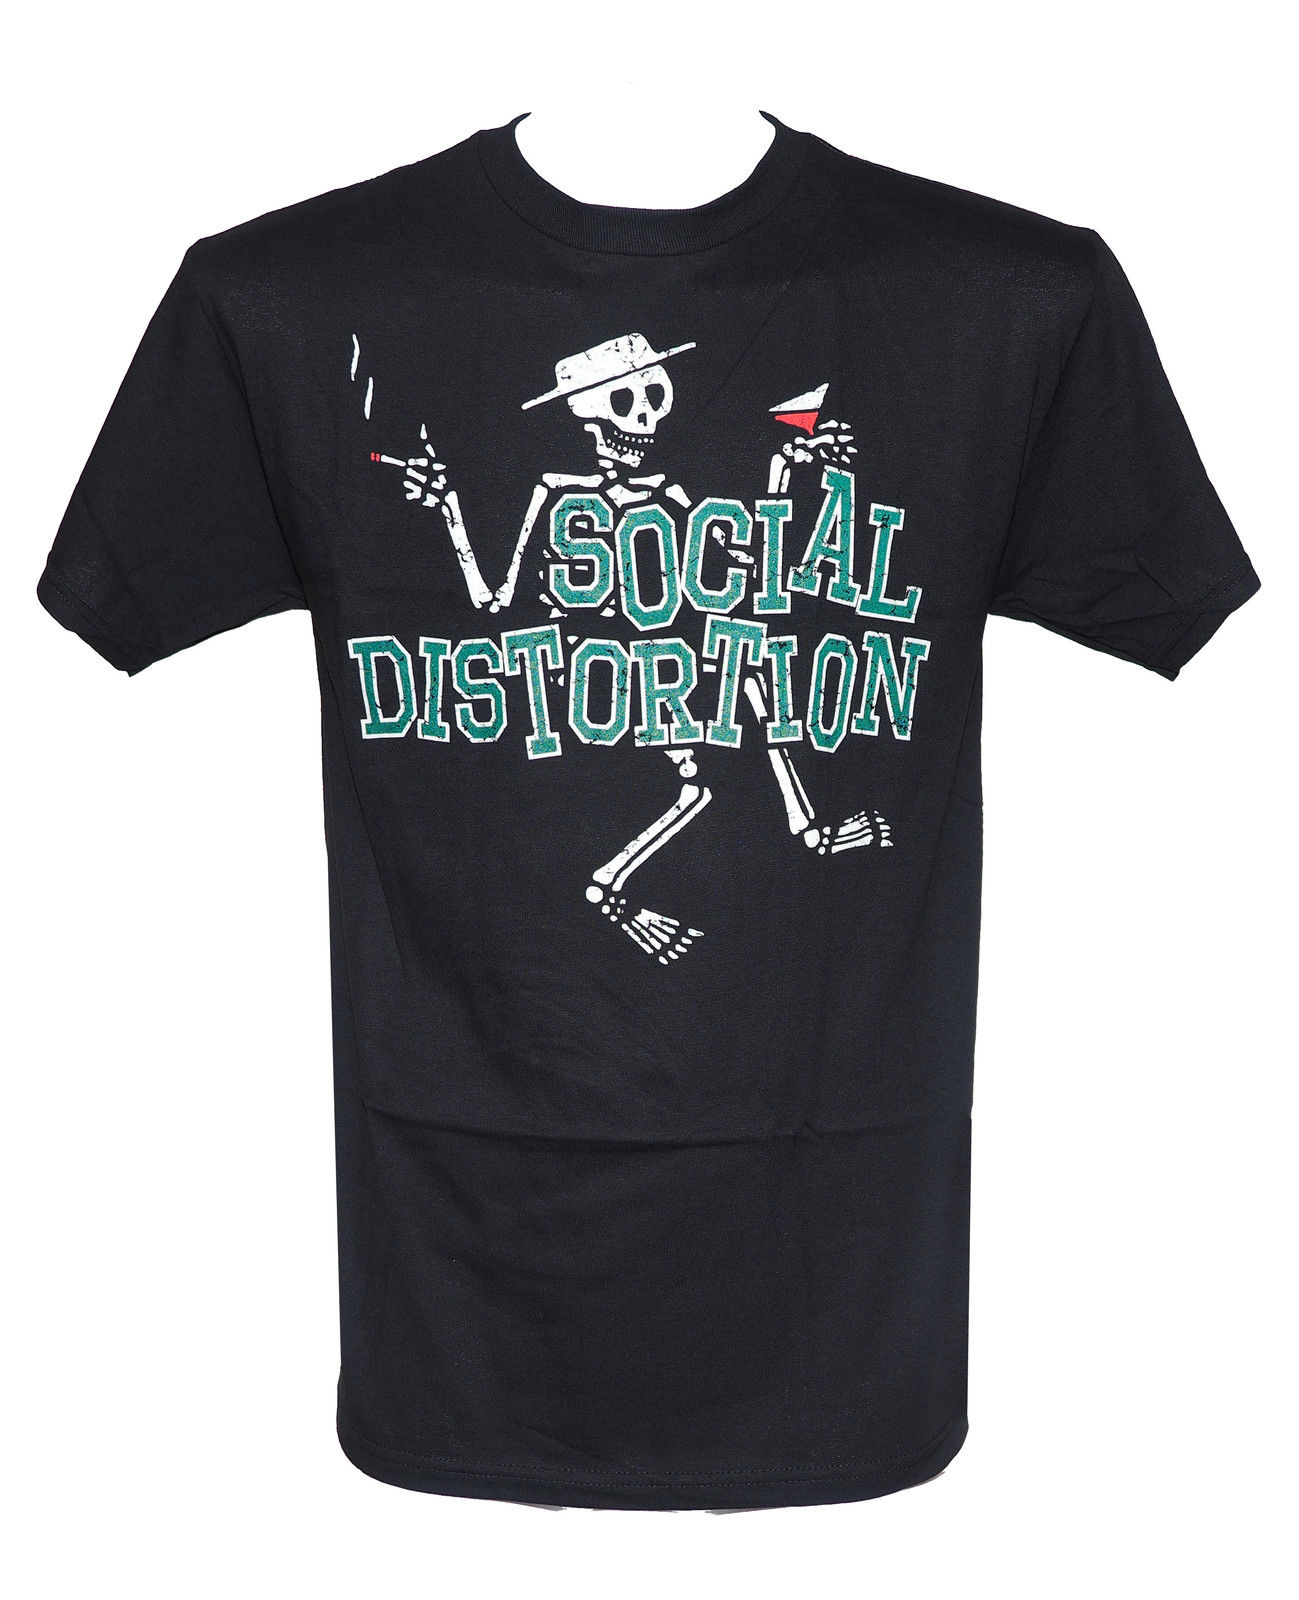 SOCIAL DISTORTION PUNK ROCK BAND LOGO MEN/'S WHITE T-SHIRT SIZE S M L XL 2XL 3XL